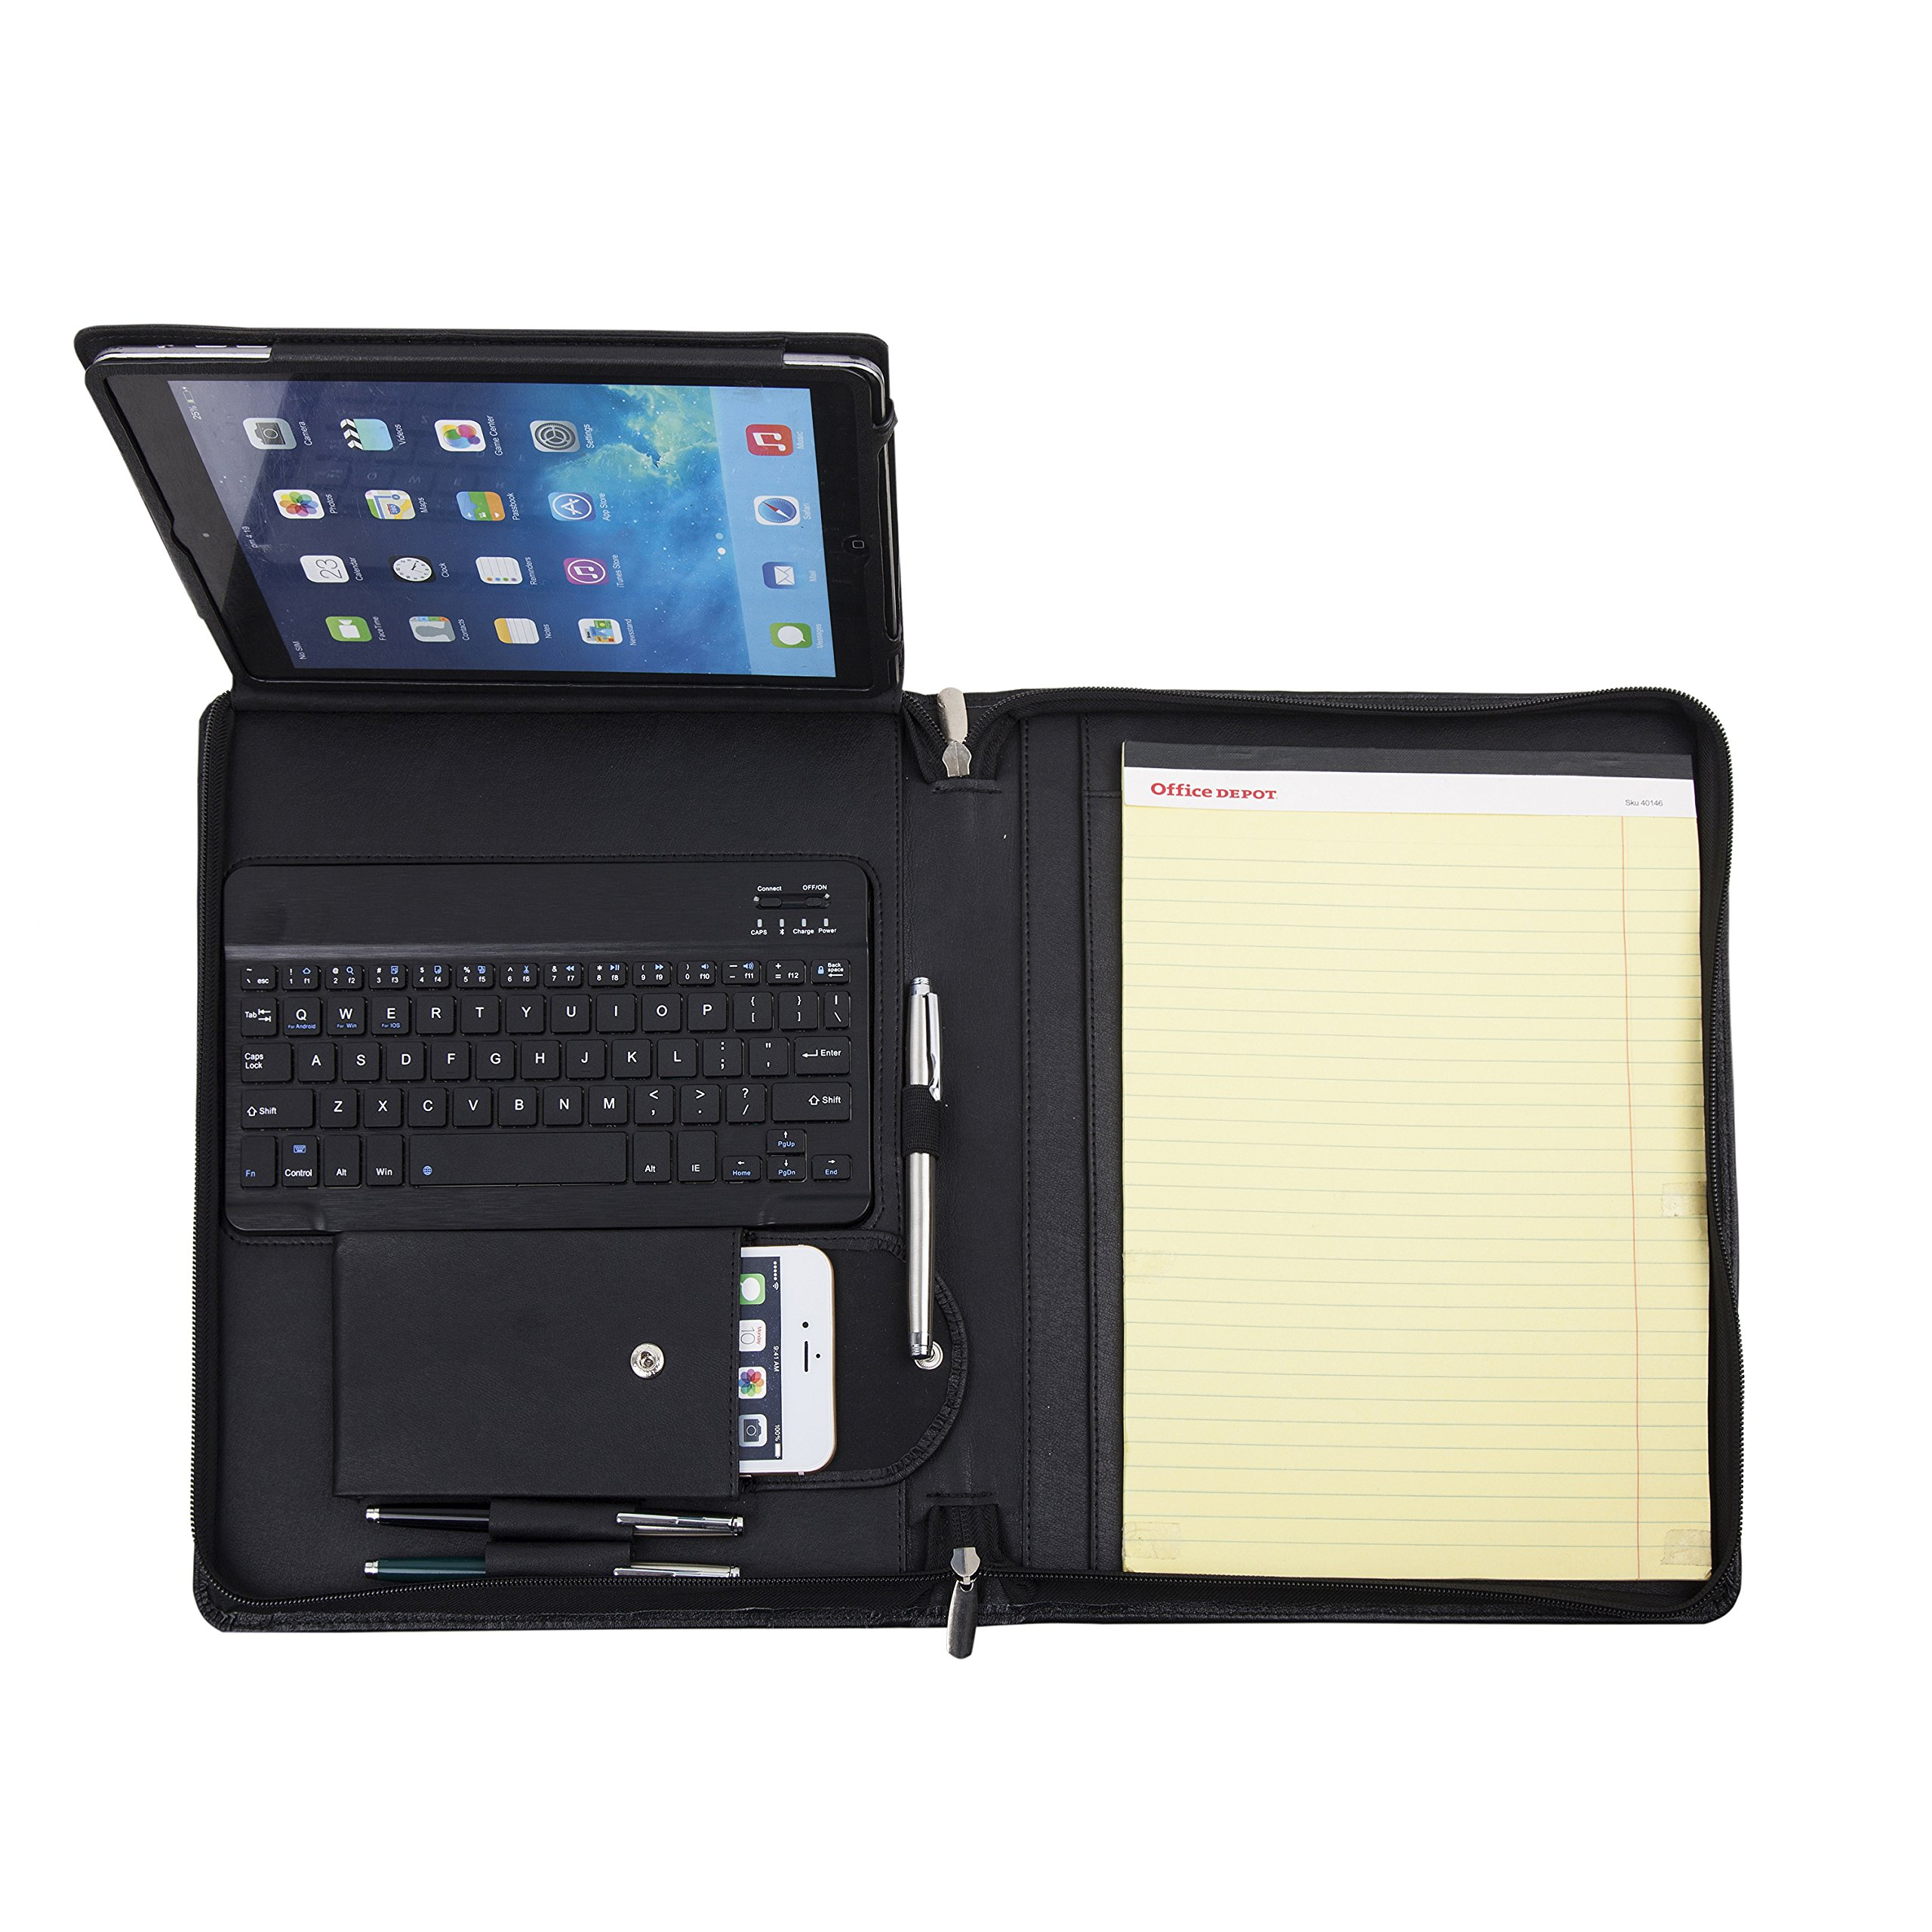 Genuine Padfolio Compact Personalized Leather Portfolio Organizer Business Portfolio Case for iPad 2/3/4 9.7 inch with Removeable Keyboard